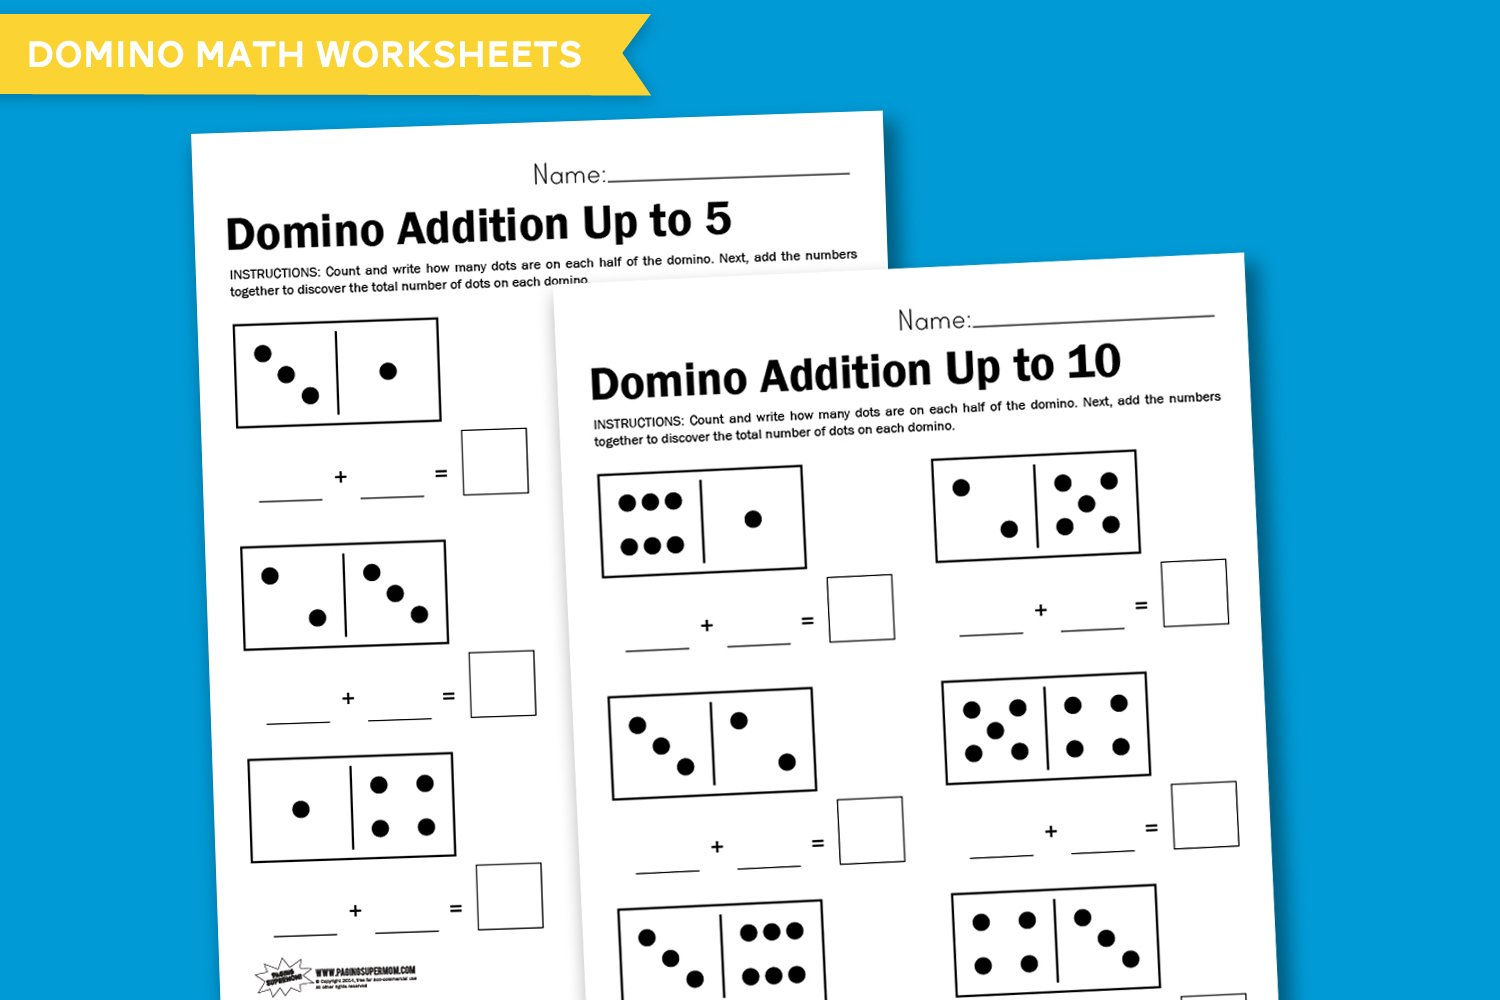 Worksheet Wednesday: Domino Math - Paging Supermom